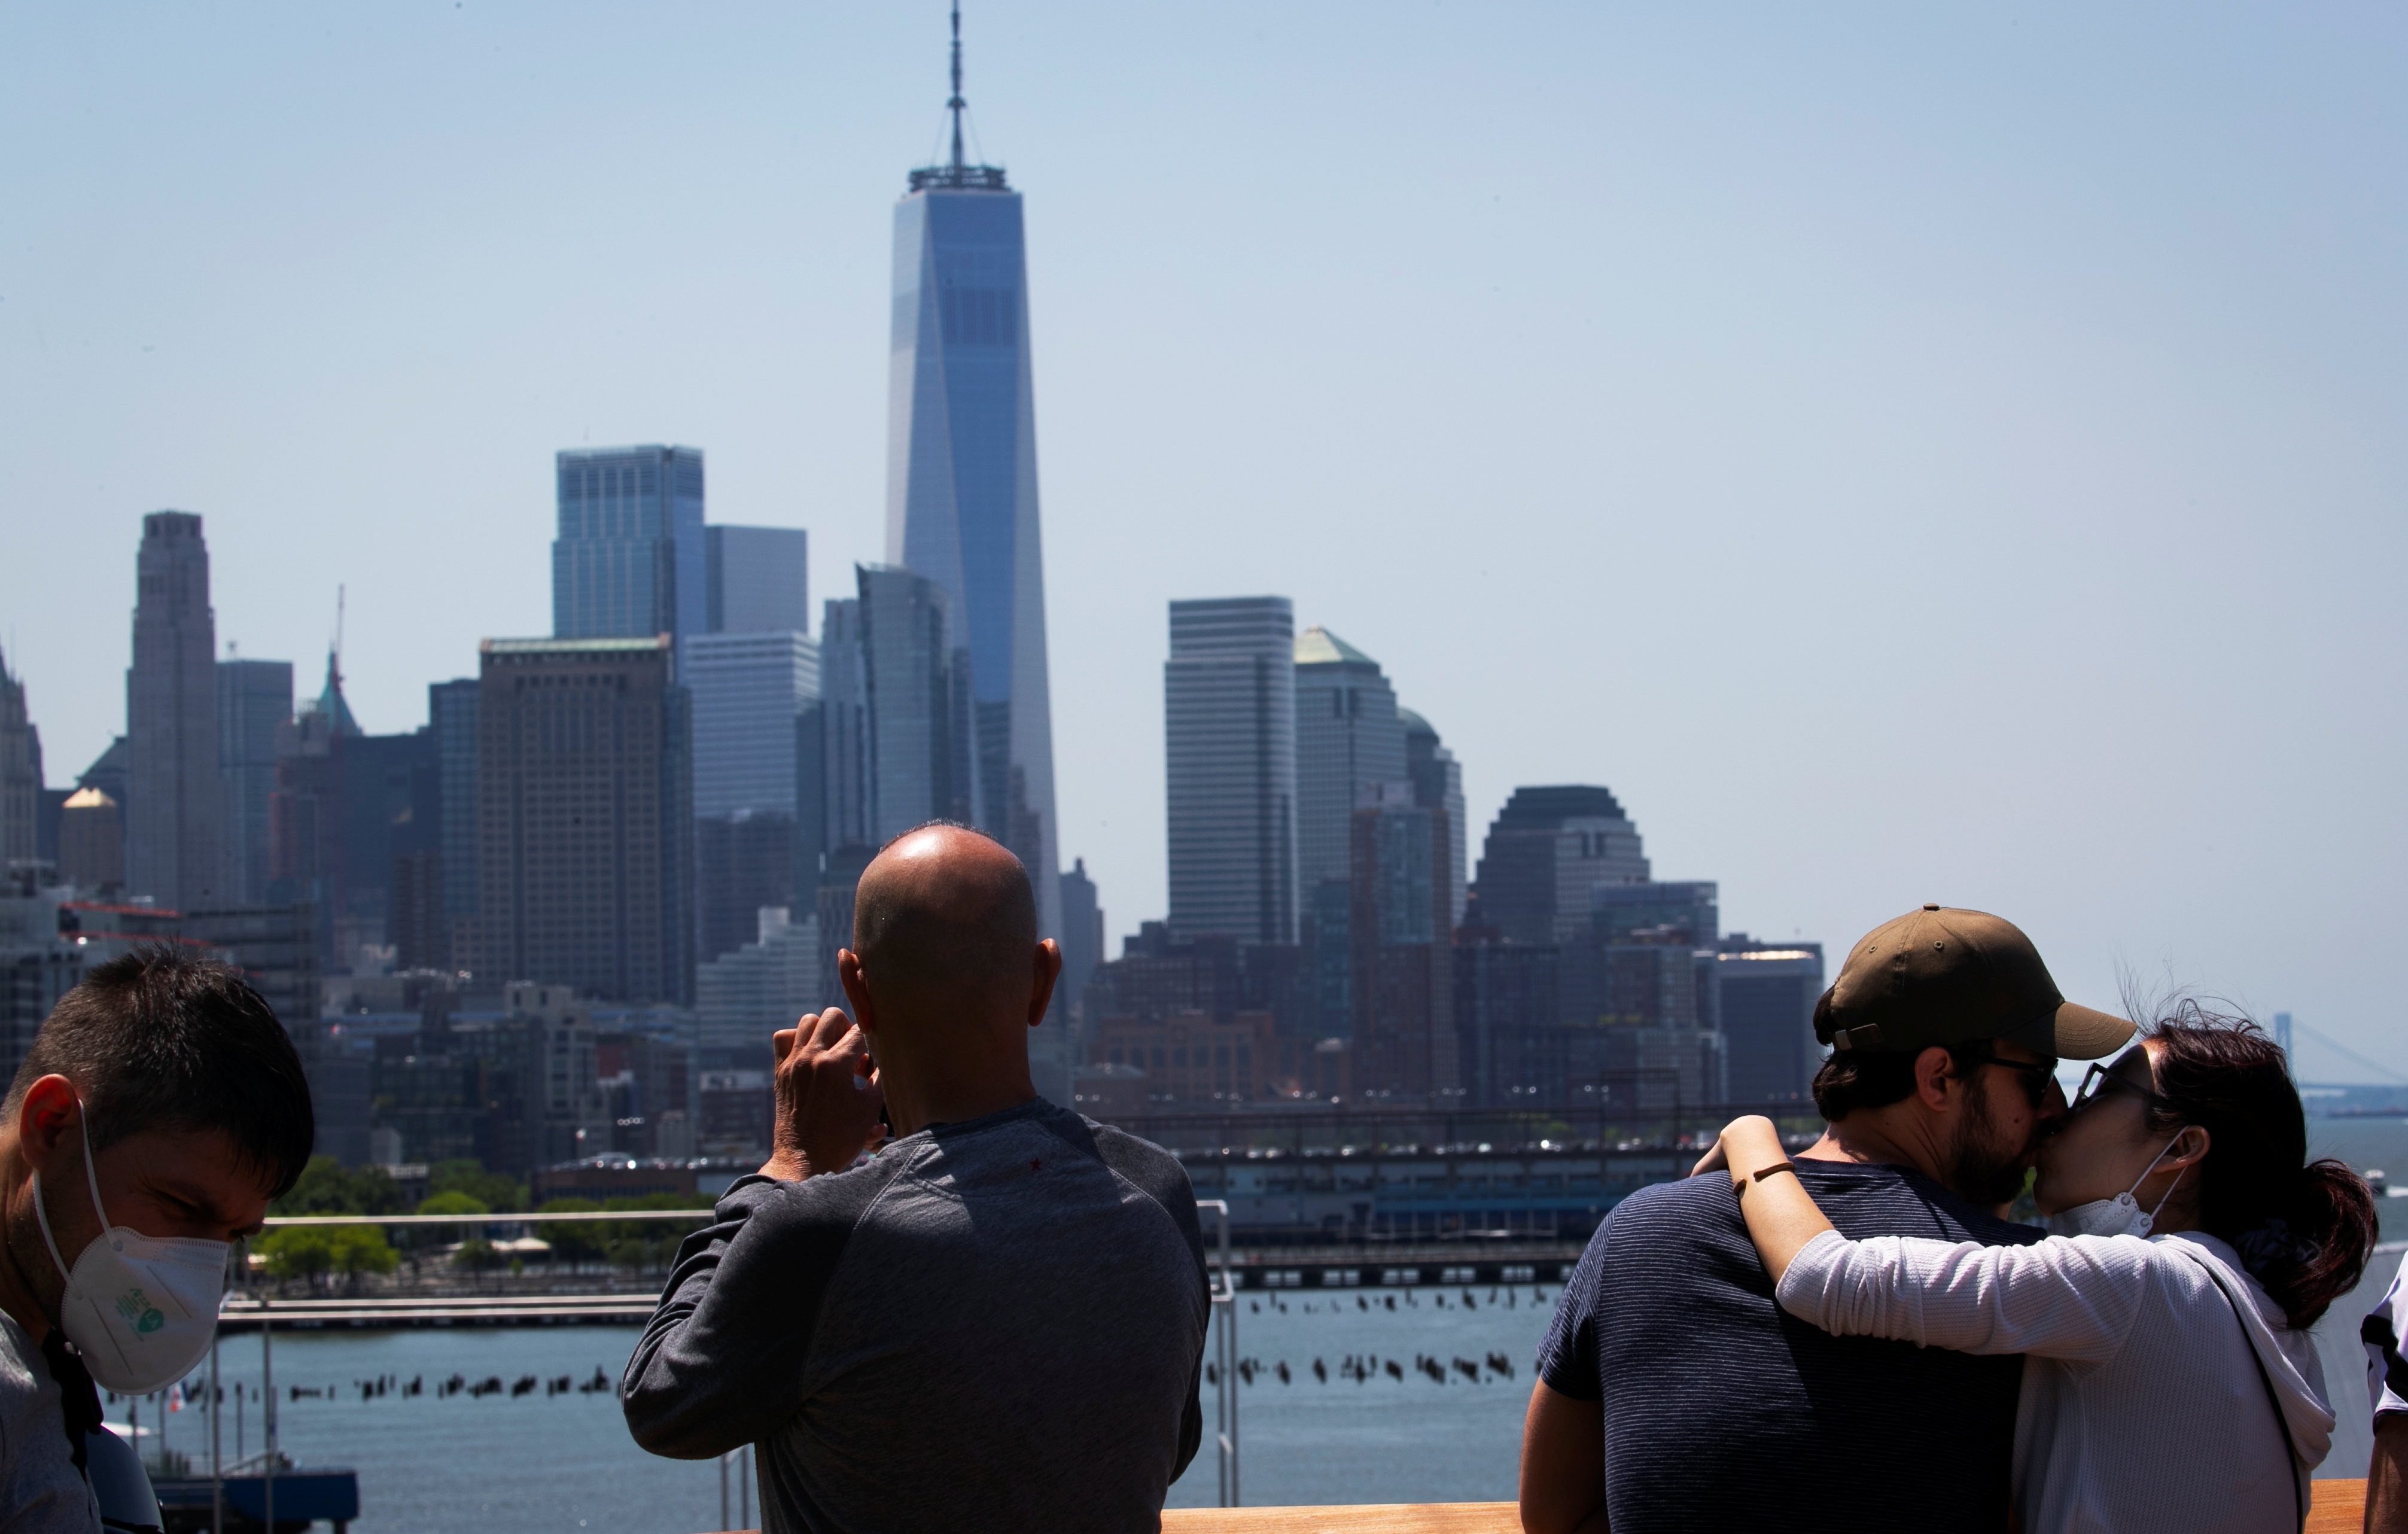 The skyline of lower Manhattan and the One World Trade Center tower are seen as people visit the peak of Little Island Park, almost three acres of new public park space which sits on stilts over the Hudson River and the remnants of Pier 54 in the larger Hudson River Park, on Manhattan's West Side, during the park's opening day in New York City, New York, U.S., May 21, 2021. REUTERS/Mike Segar